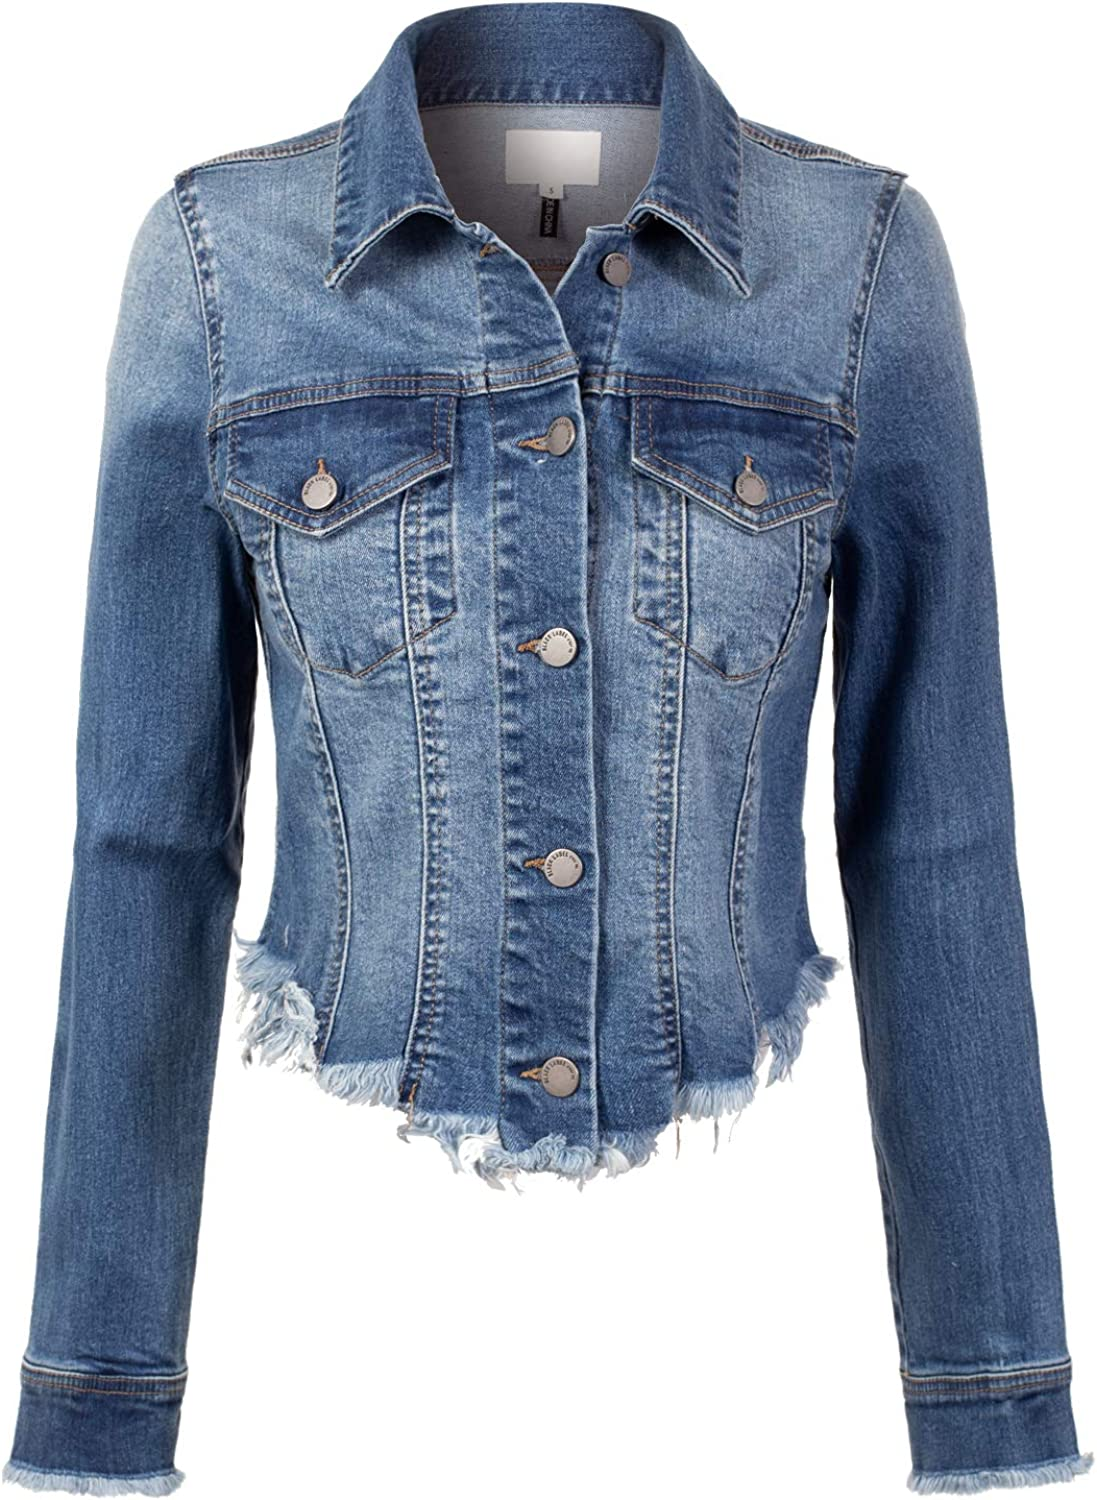 Design Same day shipping by Olivia Women's Long Sleeve Selling and selling Jack Raw Cropped Jean Denim